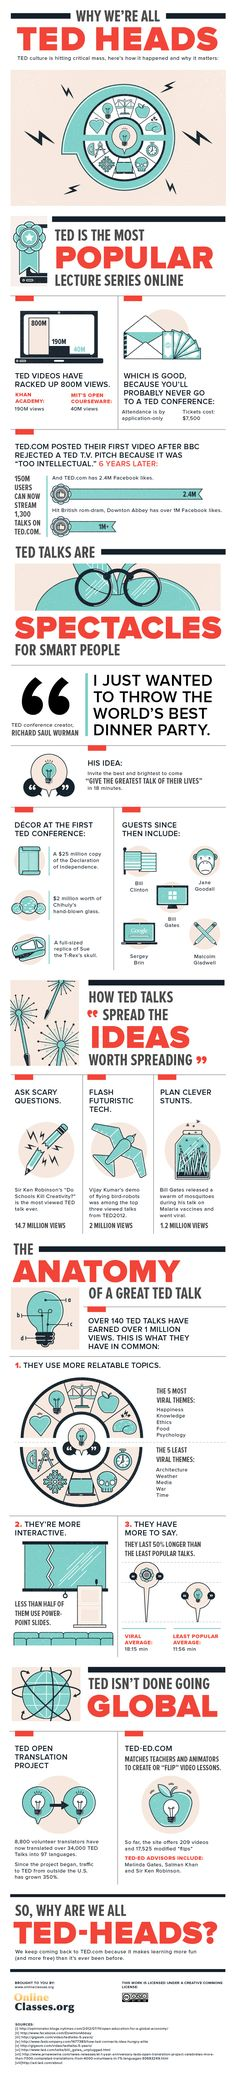 The TED Conference is growing from a meeting of minds into a force that could change the face of education. Check out this infographic to learn more.